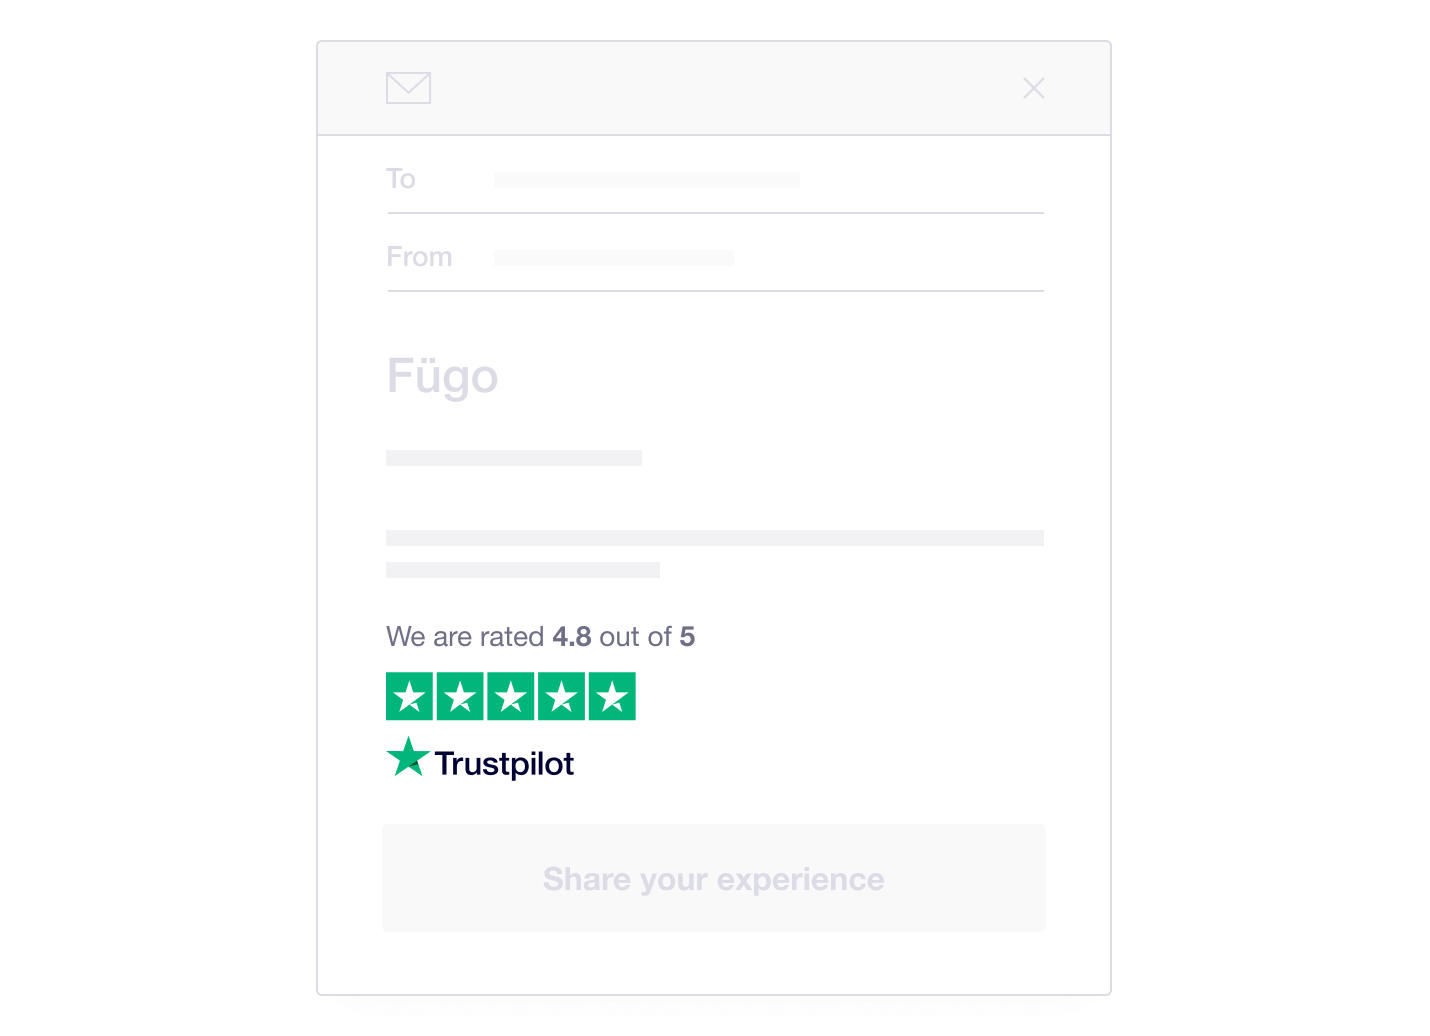 Illustration showing how Trustpilot TrustBox widgets can be used in email marketing